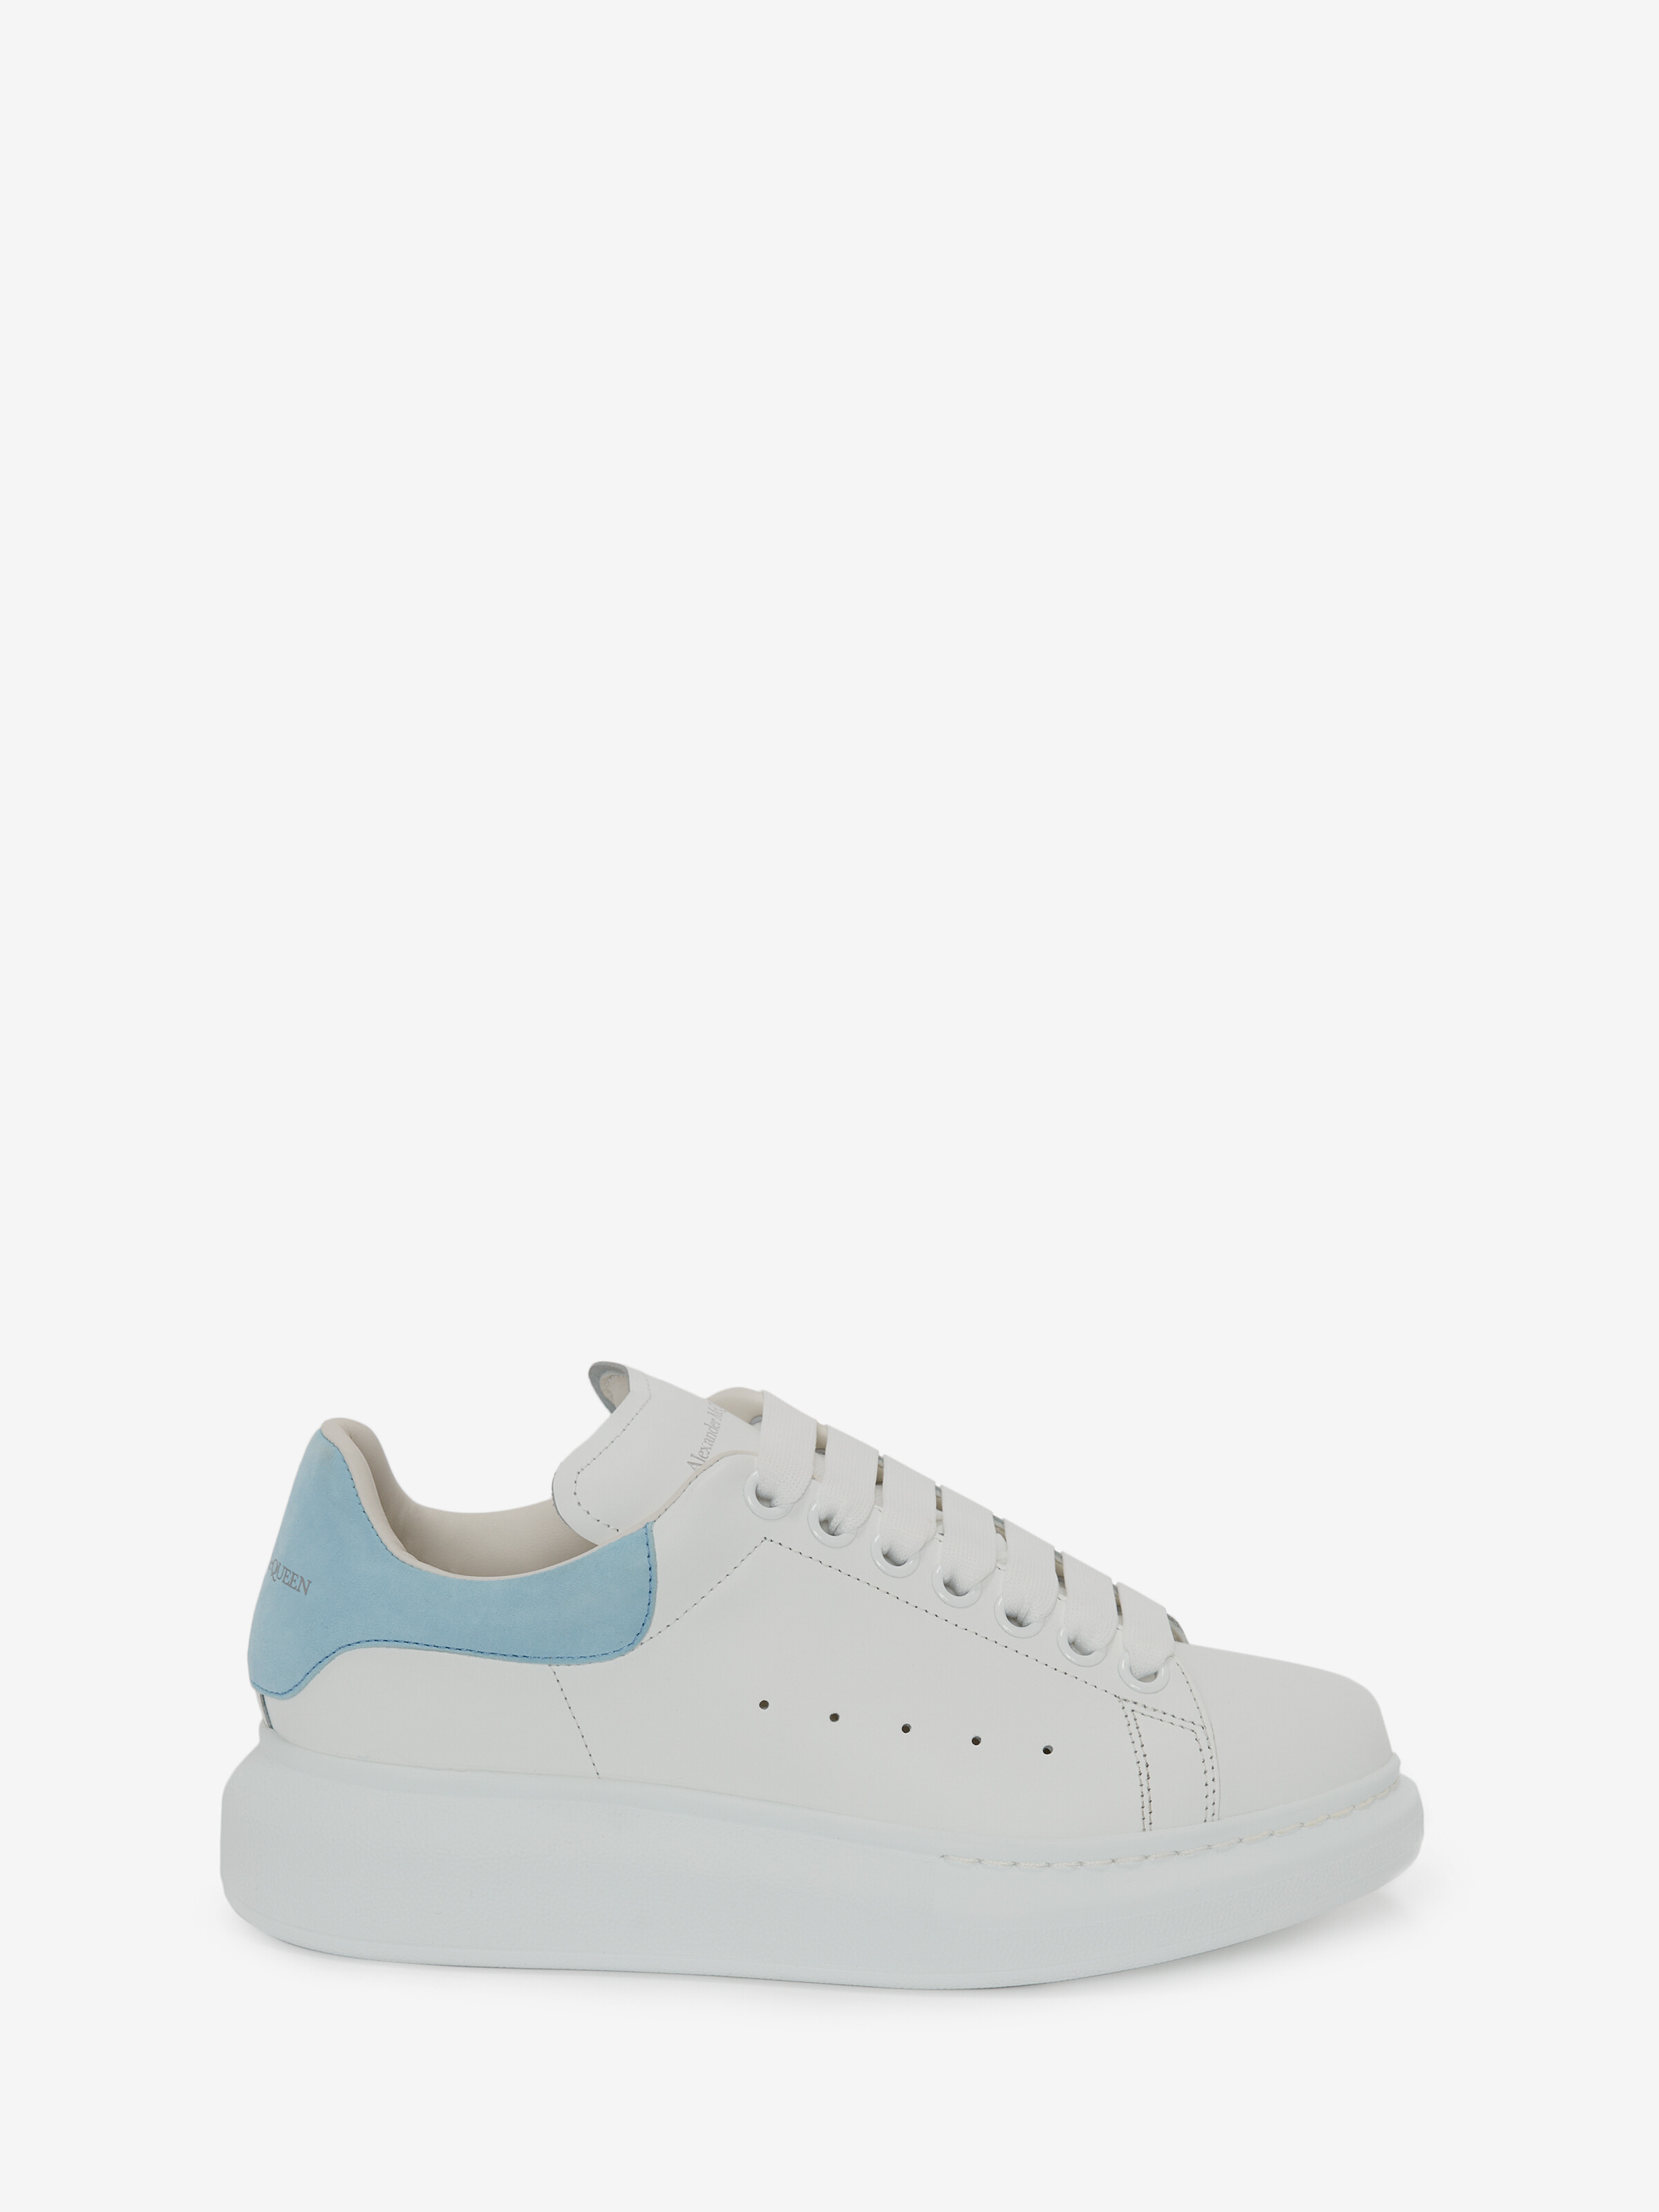 Alexander Mcqueen Suede-trimmed Leather Exaggerated-sole Sneakers In Light Indigo